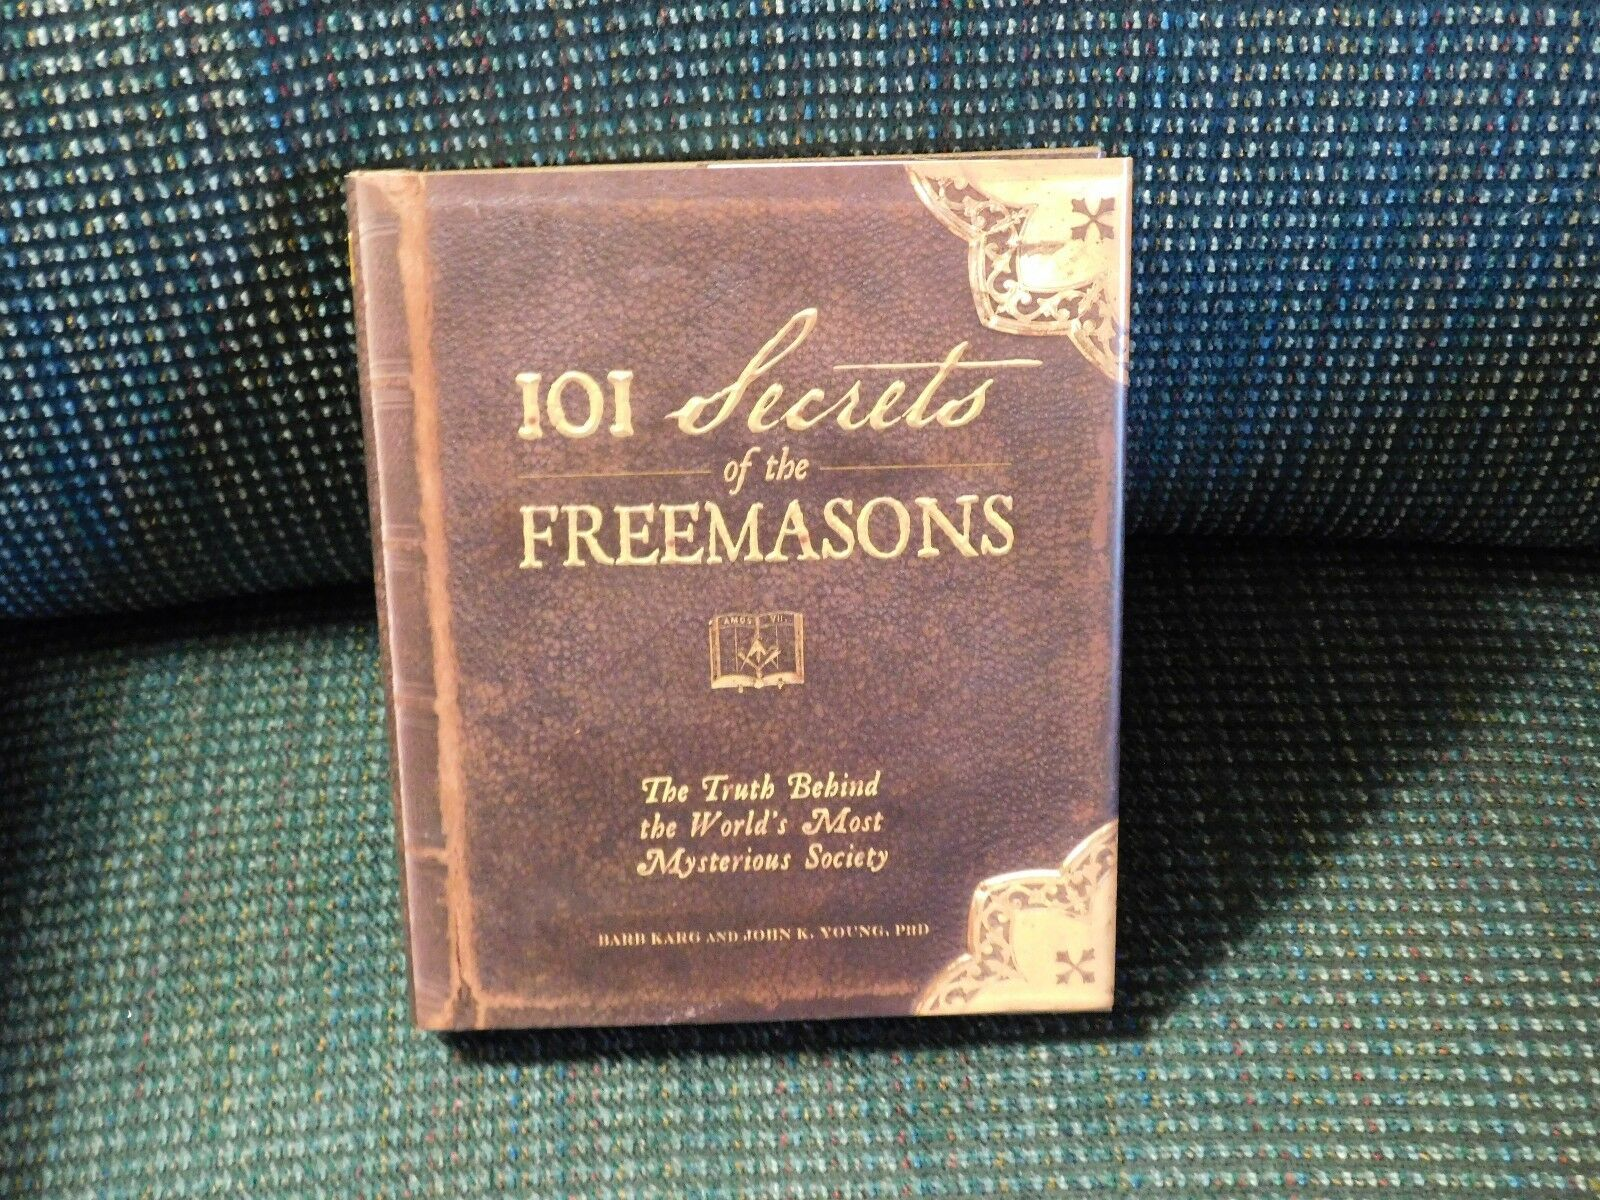 101 secrets of the freemasons karg barb young jon k